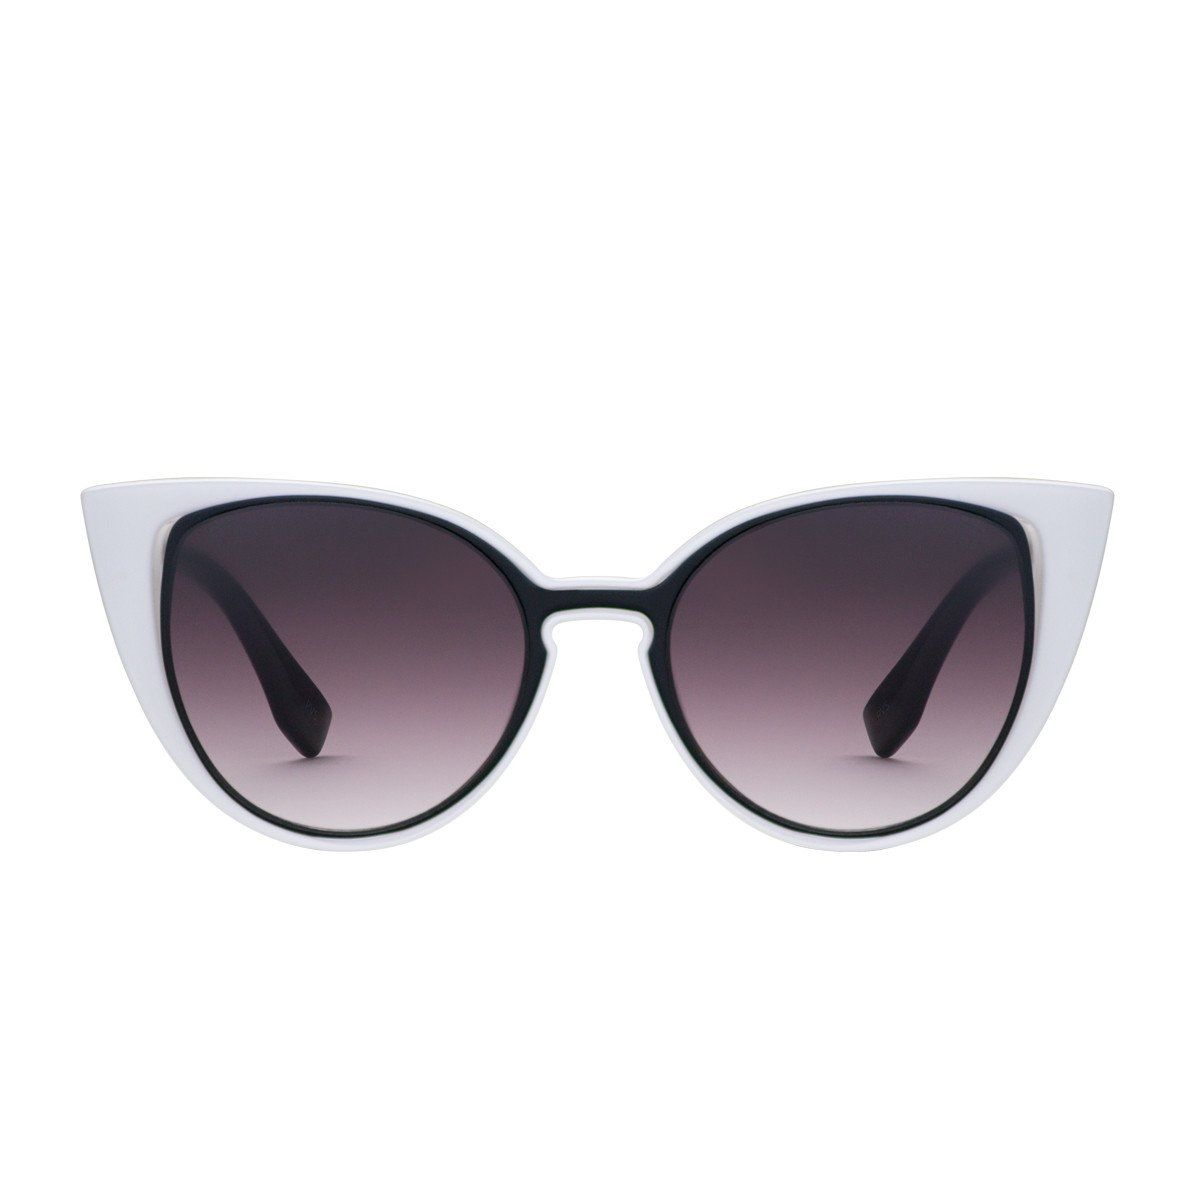 bd91560f47 01-Red: Glossy red with black gradient lens. | buy me etc | Pinterest |  Sunglasses, Cat eye sunglasses and Sunnies